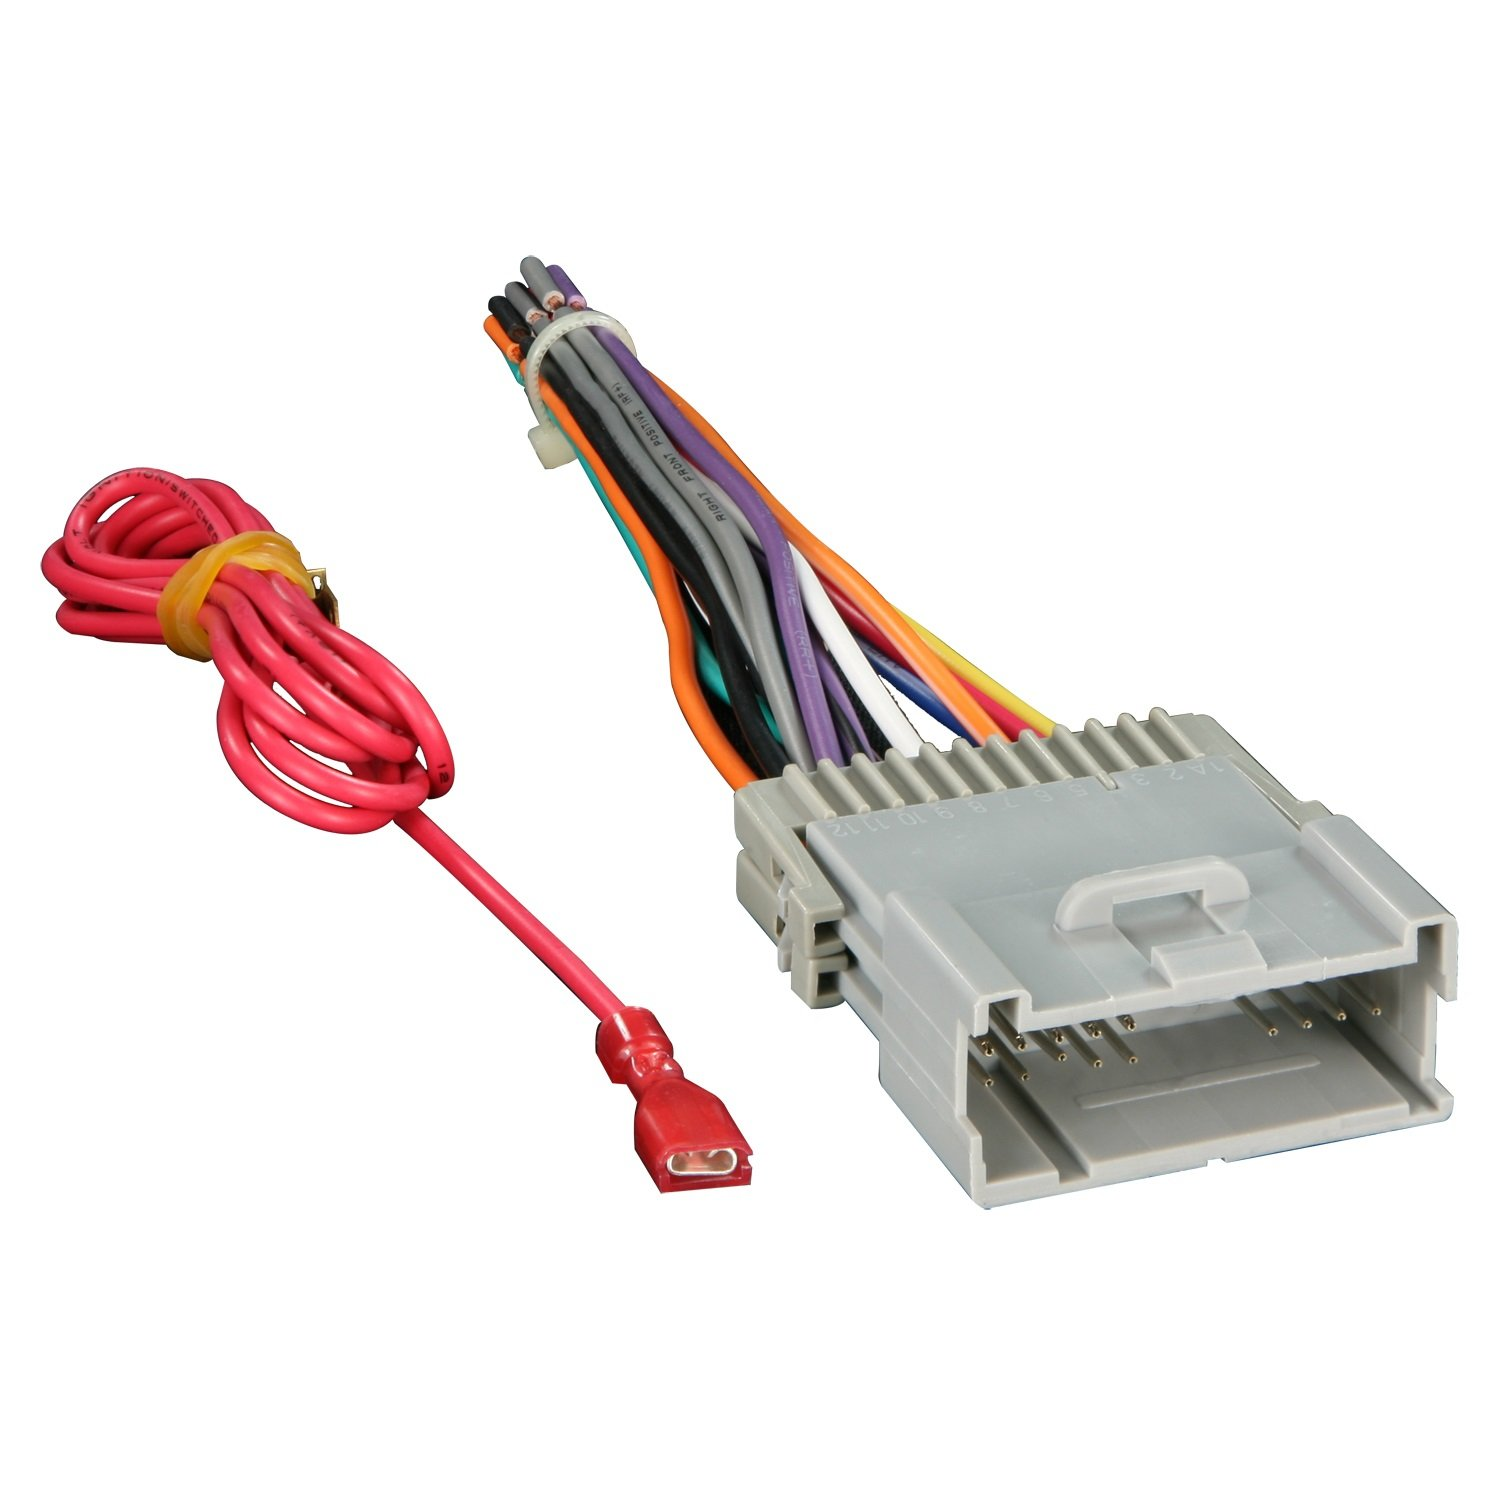 61eewxp9orL._SL1500_ amazon com metra 70 2003 radio wiring harness for gm 98 08 wiring harness pins at webbmarketing.co